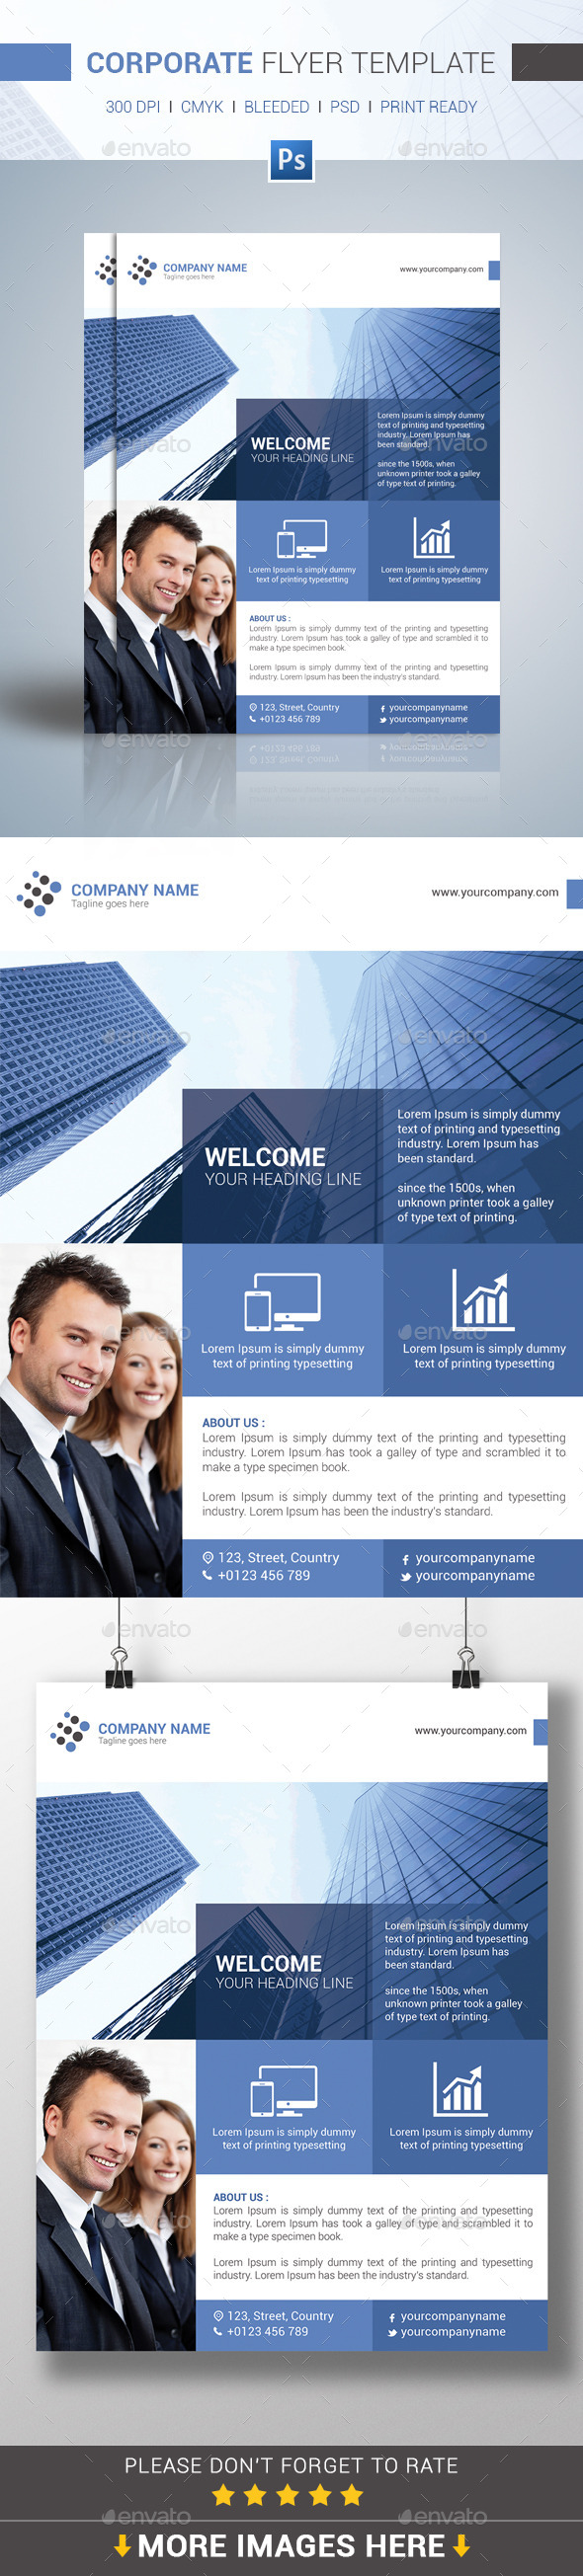 GraphicRiver Corporate Flyer Template 11232149